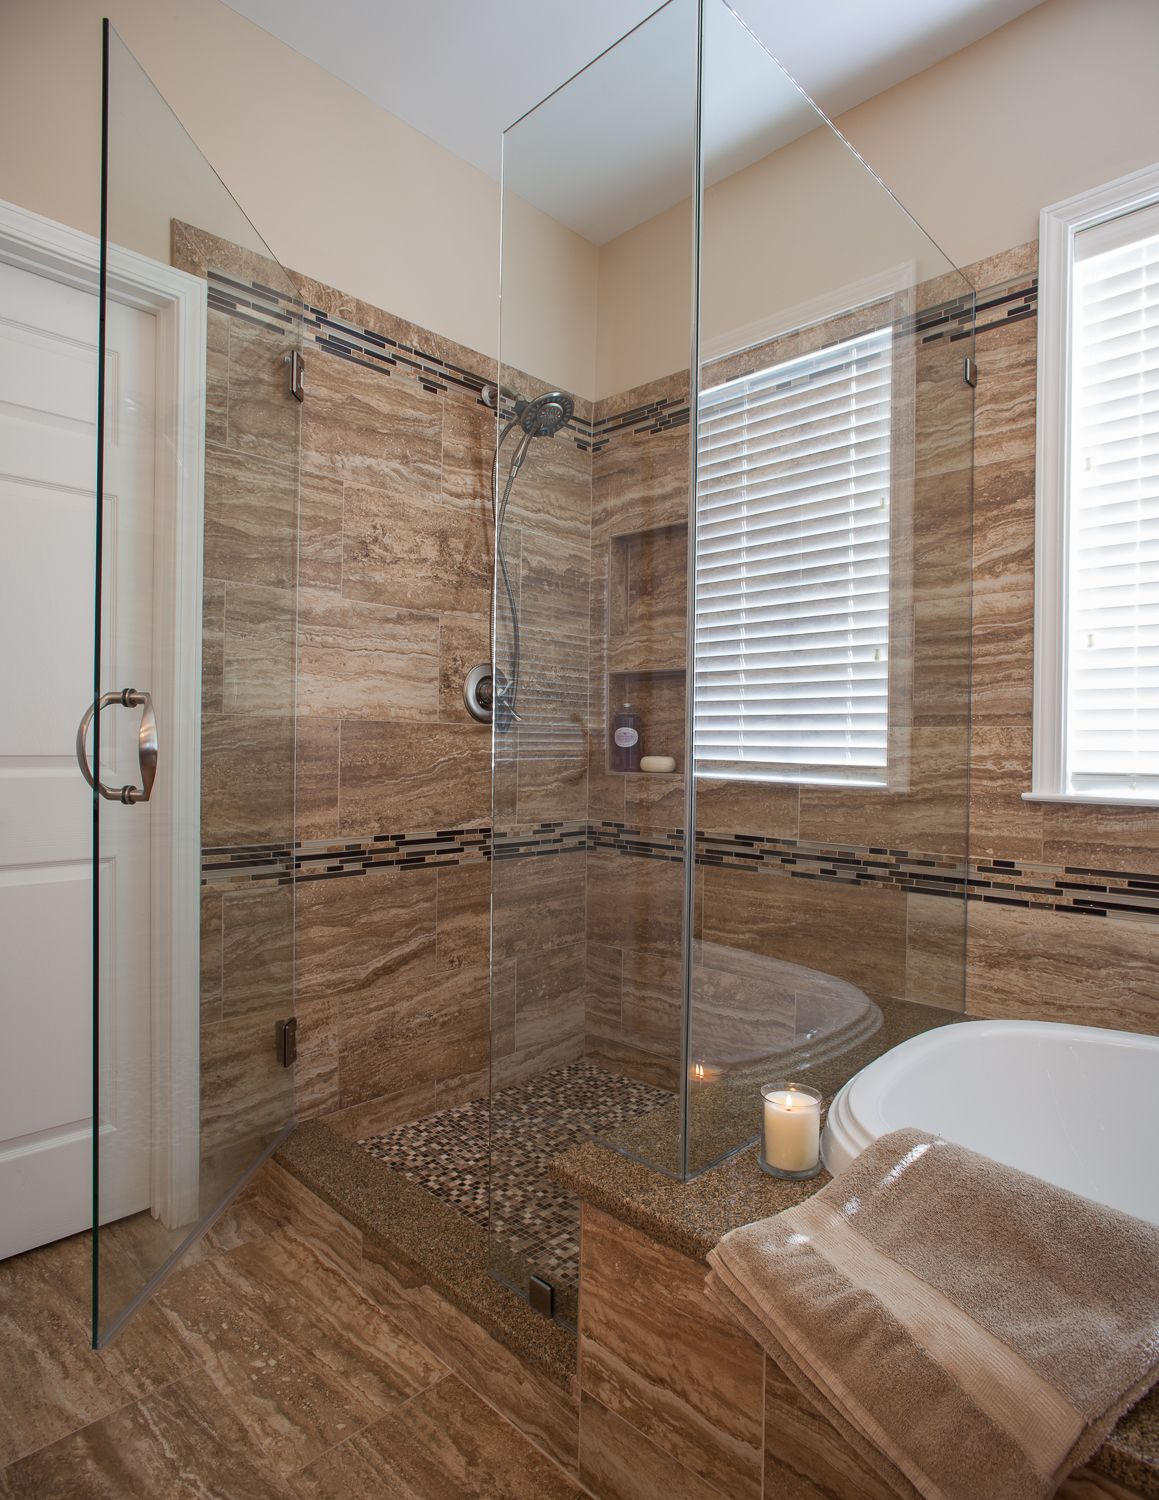 walk in shower ideas For Master Bathroom with glass divider and ...